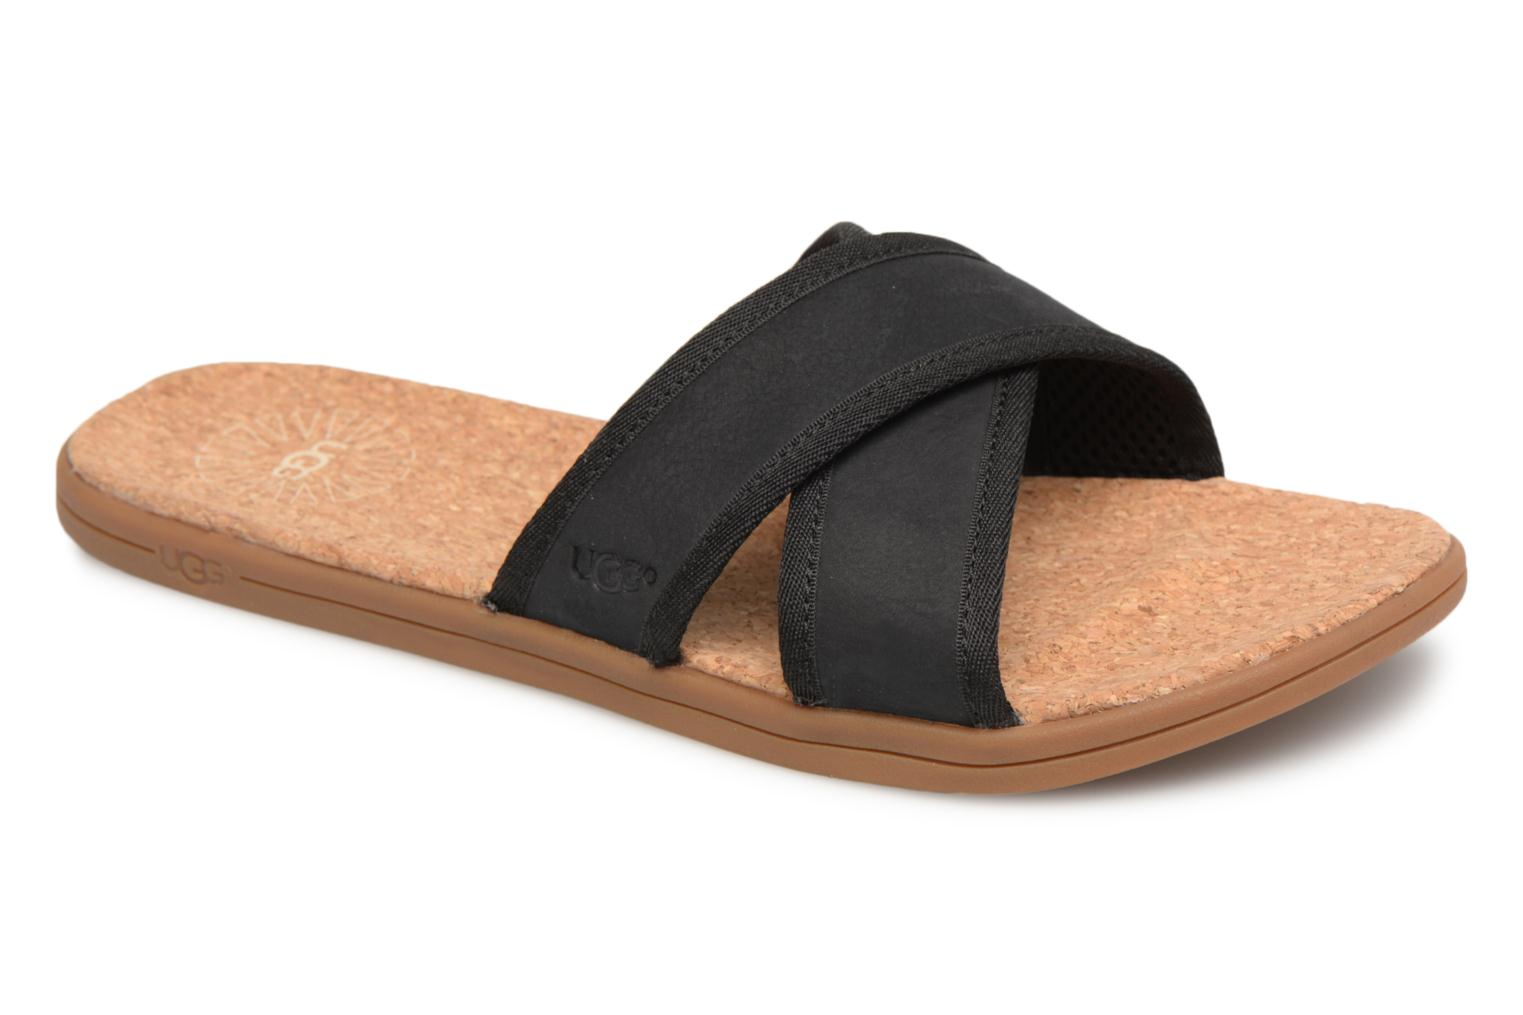 UGG SEASIDE SLIDE - Mules - black 7d4CqTff